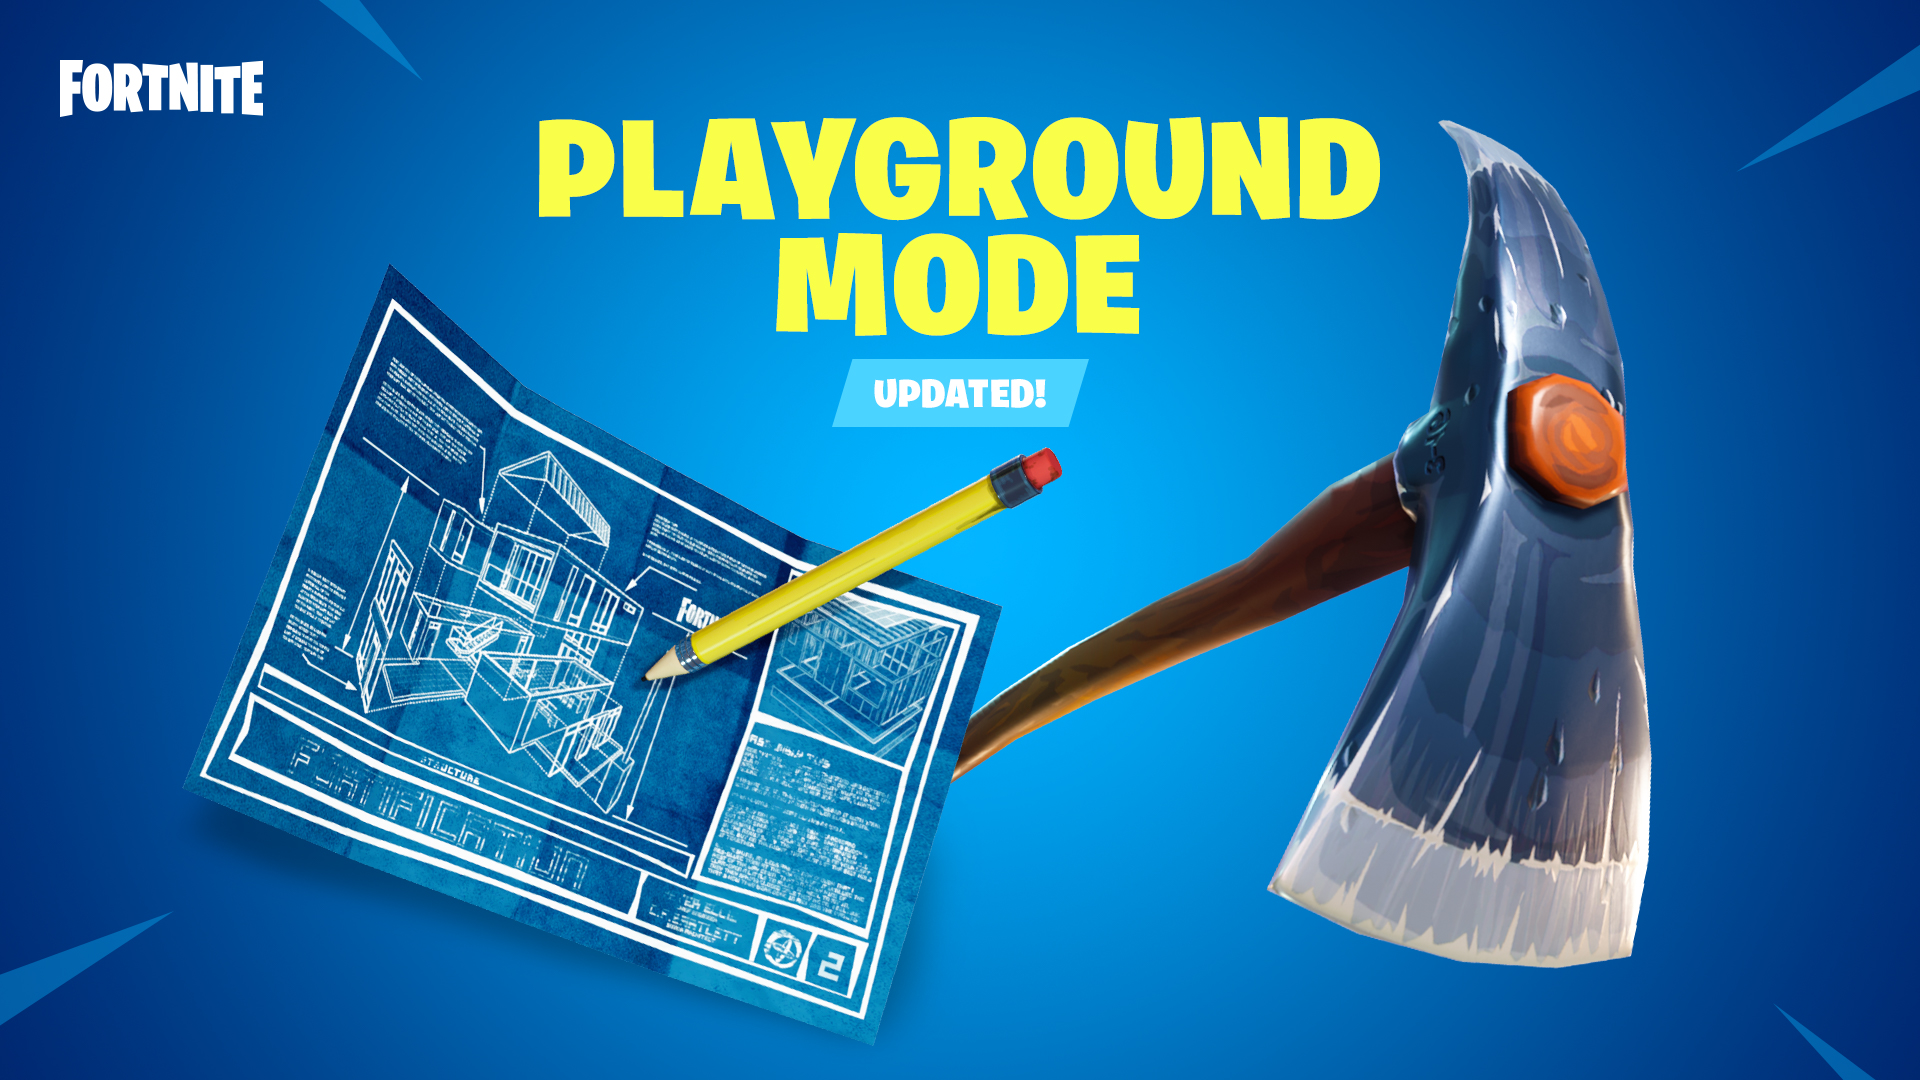 When is Fortnite Playground v2 released and what's being changed?